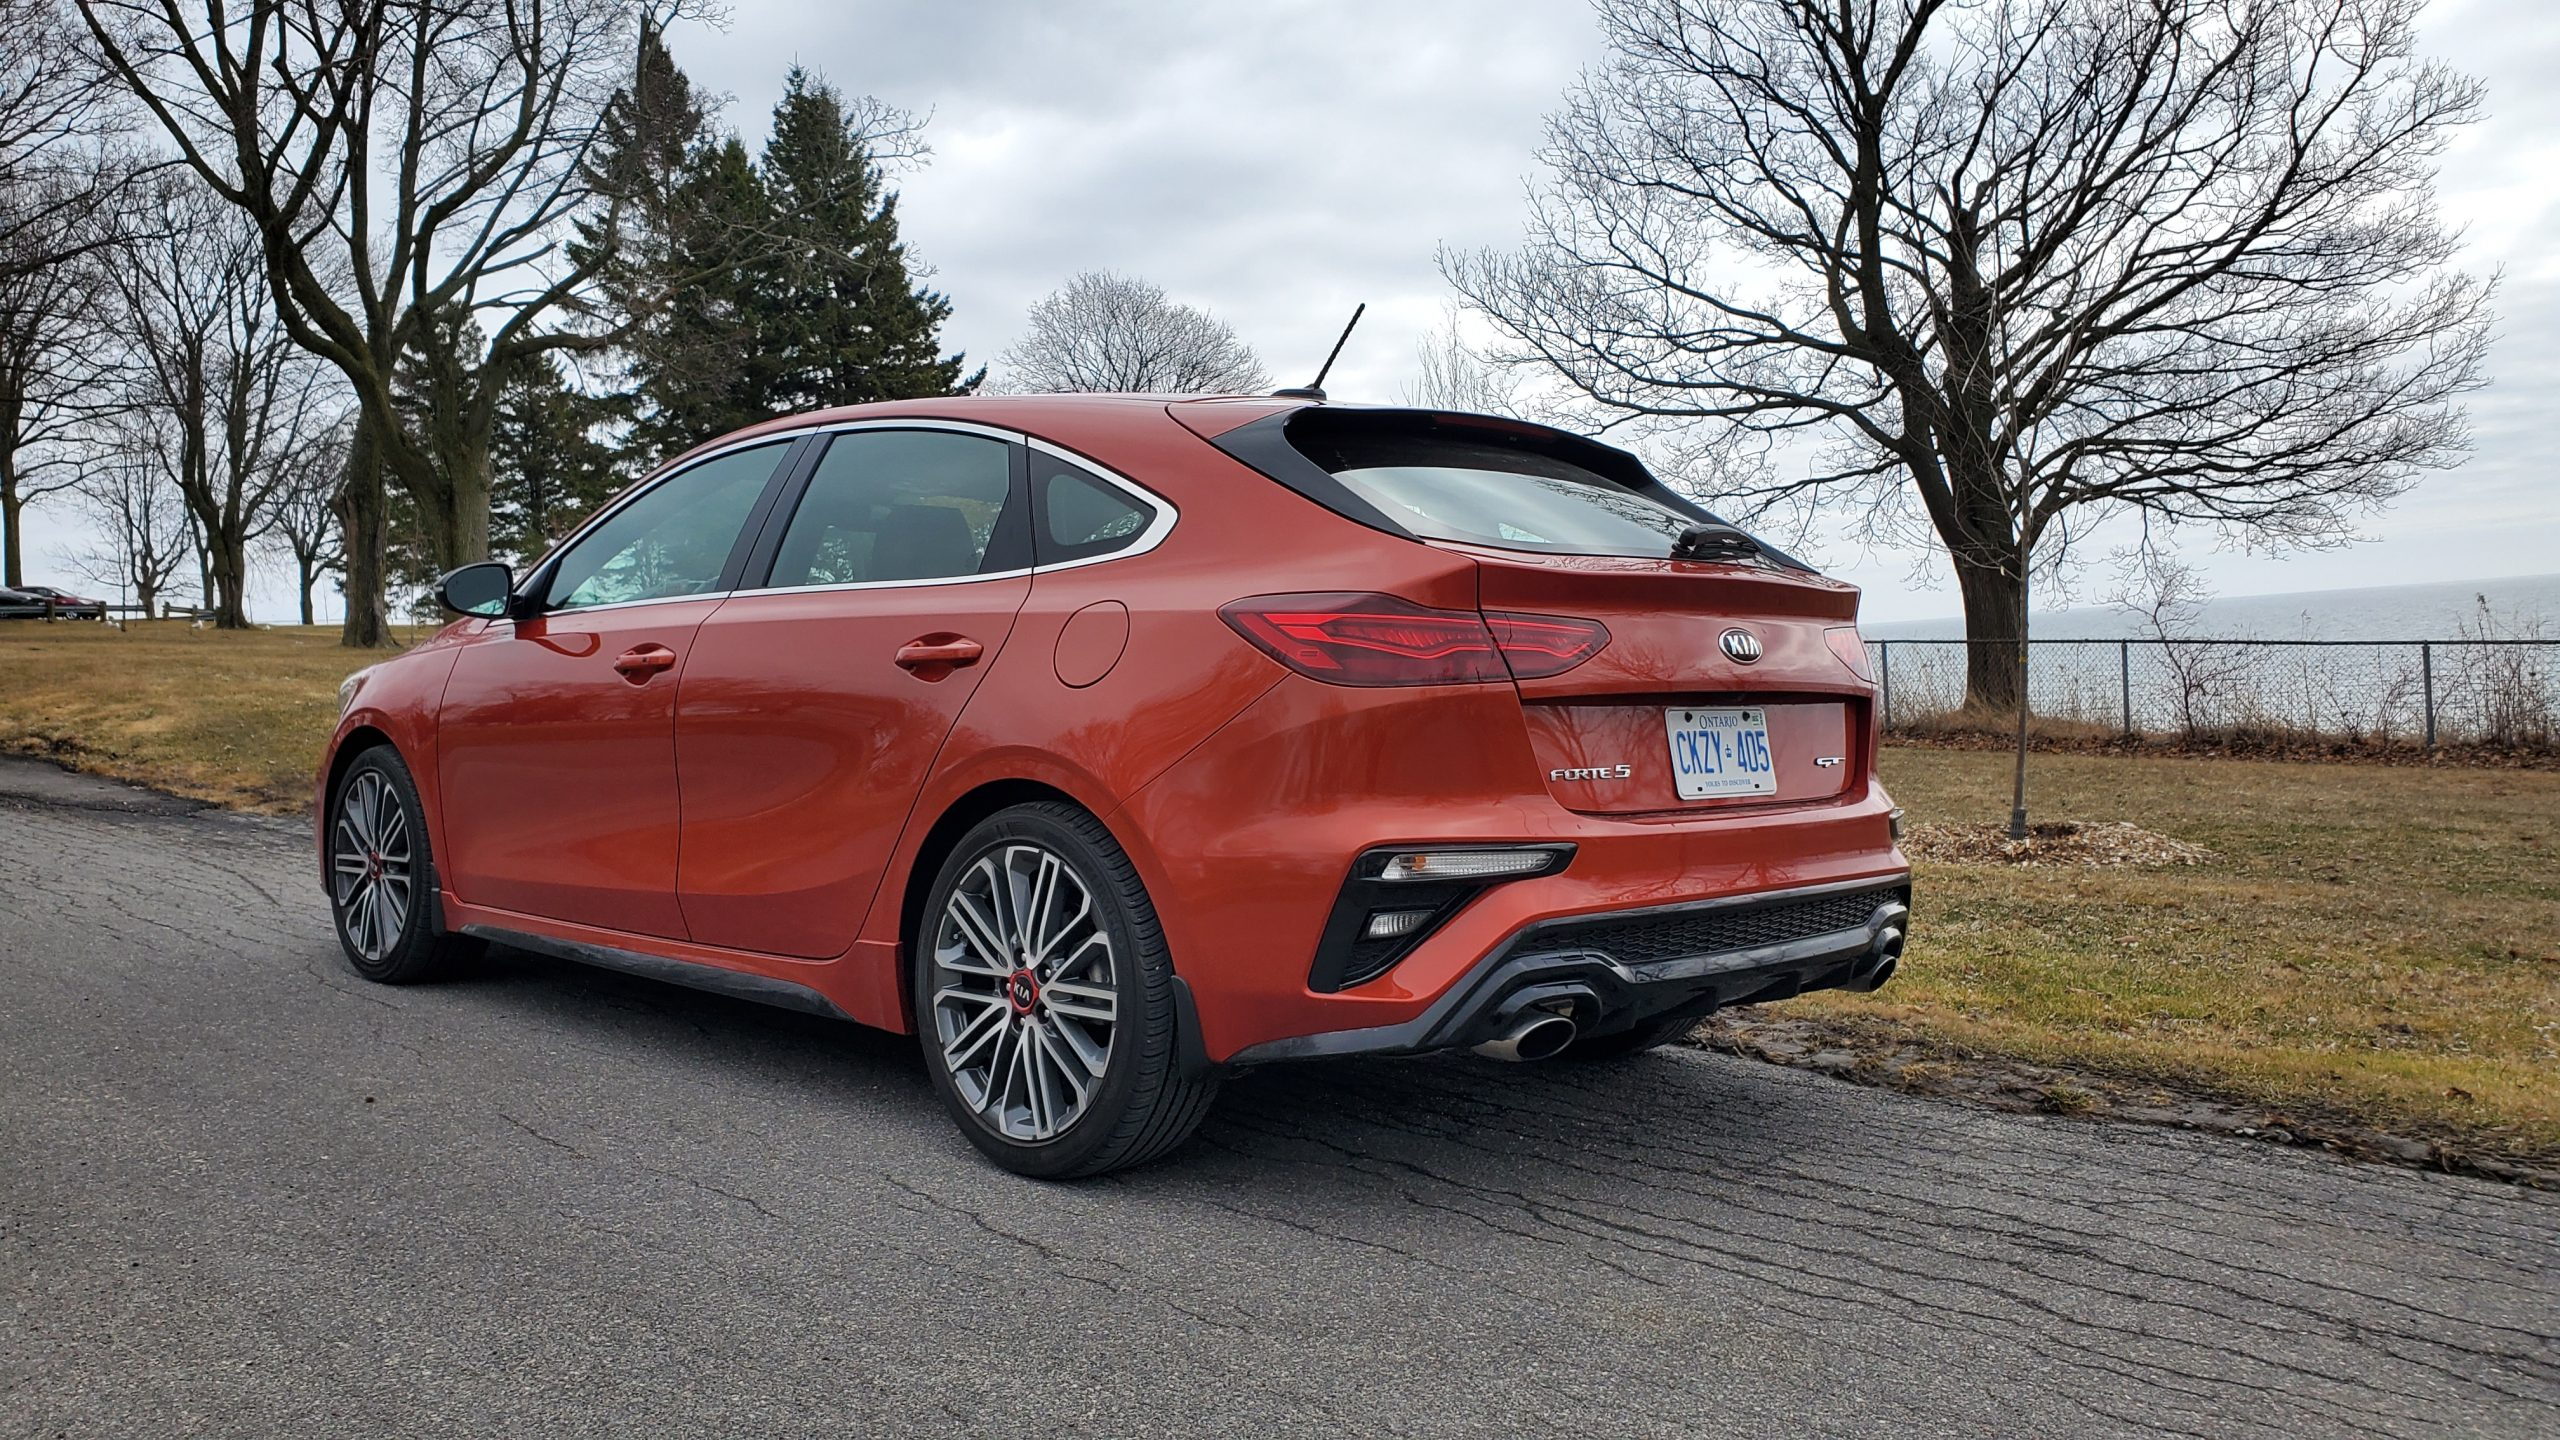 Review: 2020 Kia Forte5 GT Limited